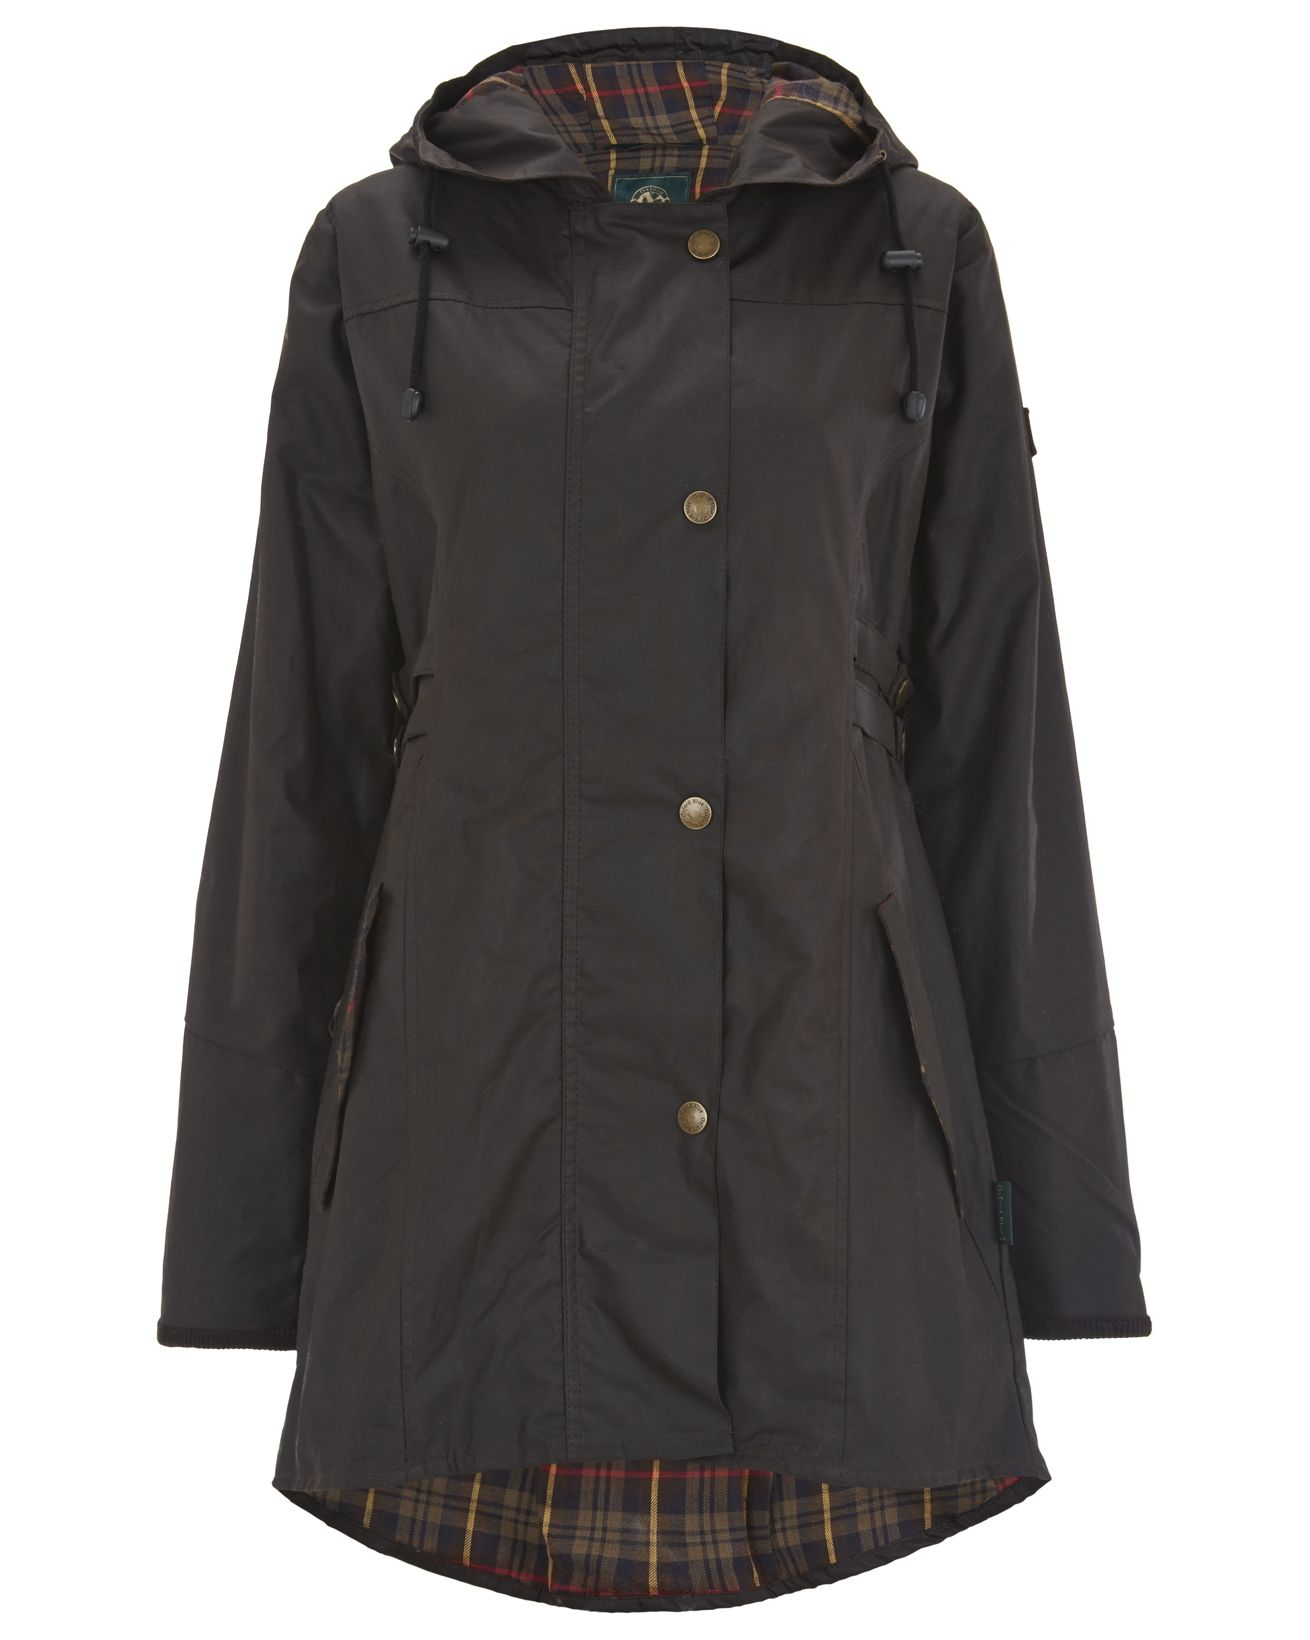 99c03001b wax riding coat - wet weather wear - waterproof jacket | style ...